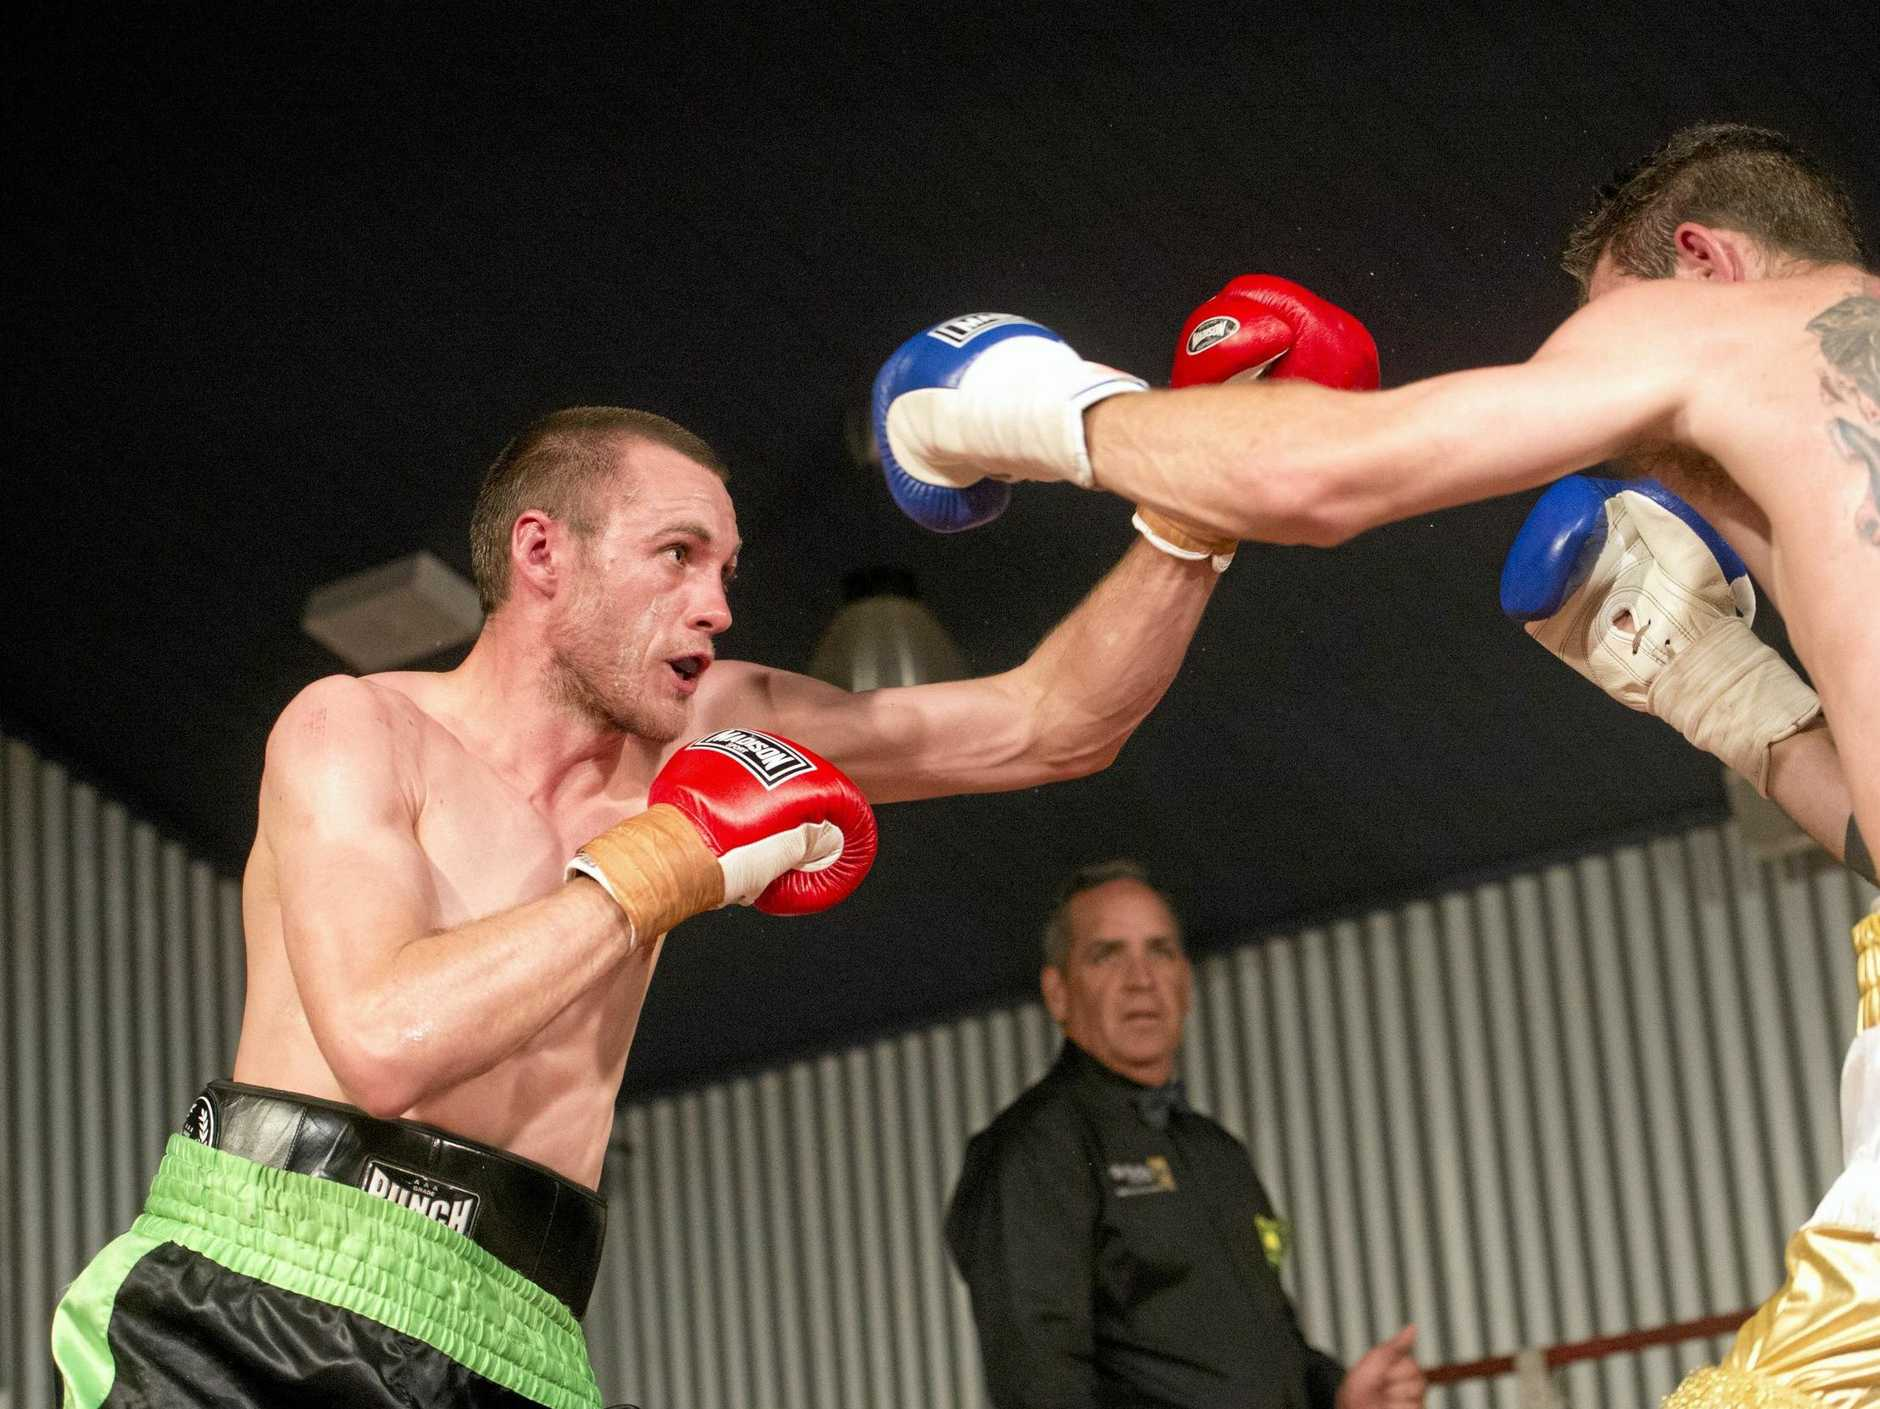 Maks Chylewski (left) mixes it in his last ring appearance with fellow Toowoomba fighter Brent Moore.